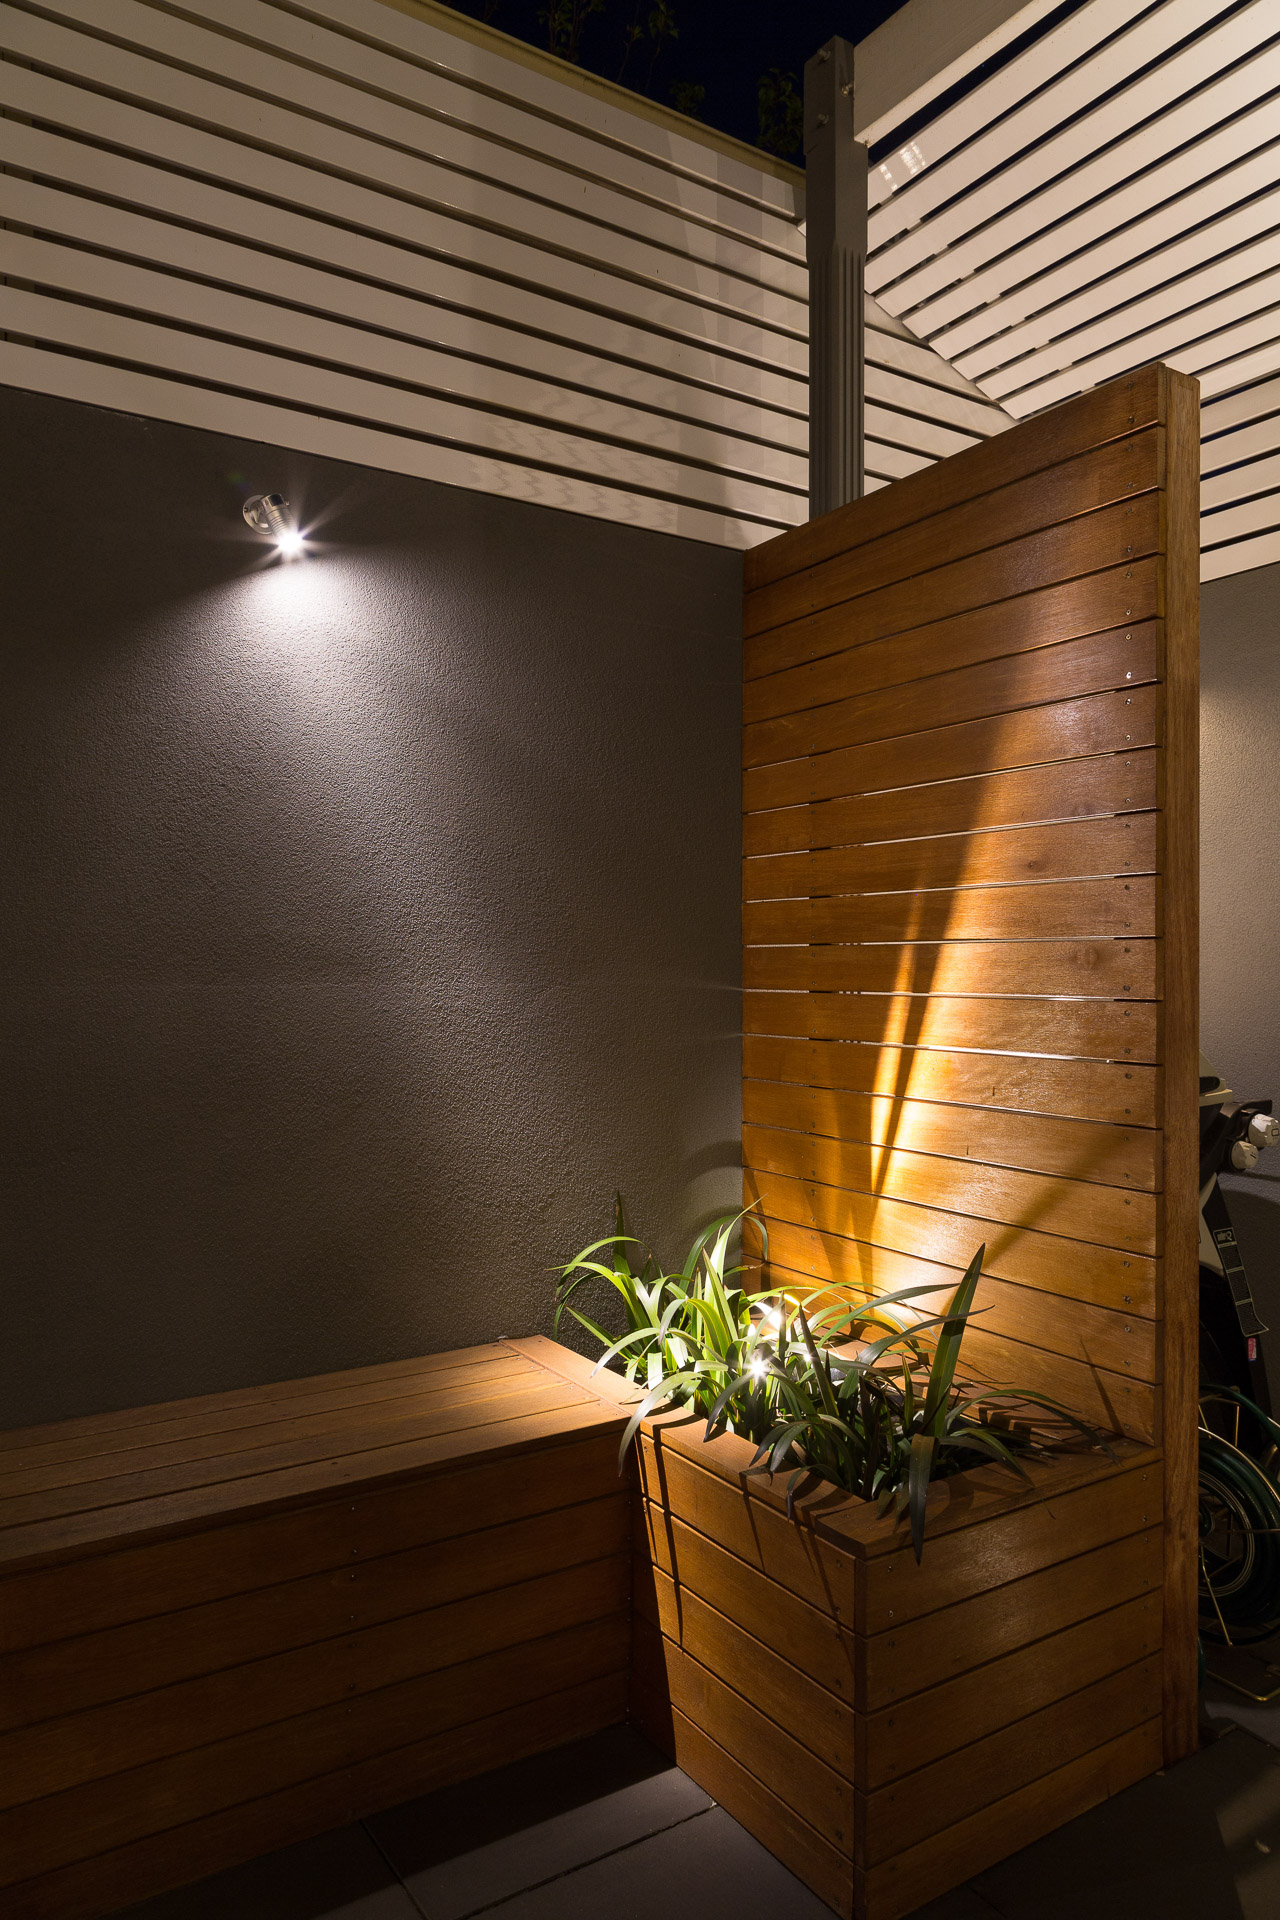 feature wall lighting. Lux Wall Light Lighting Feature A